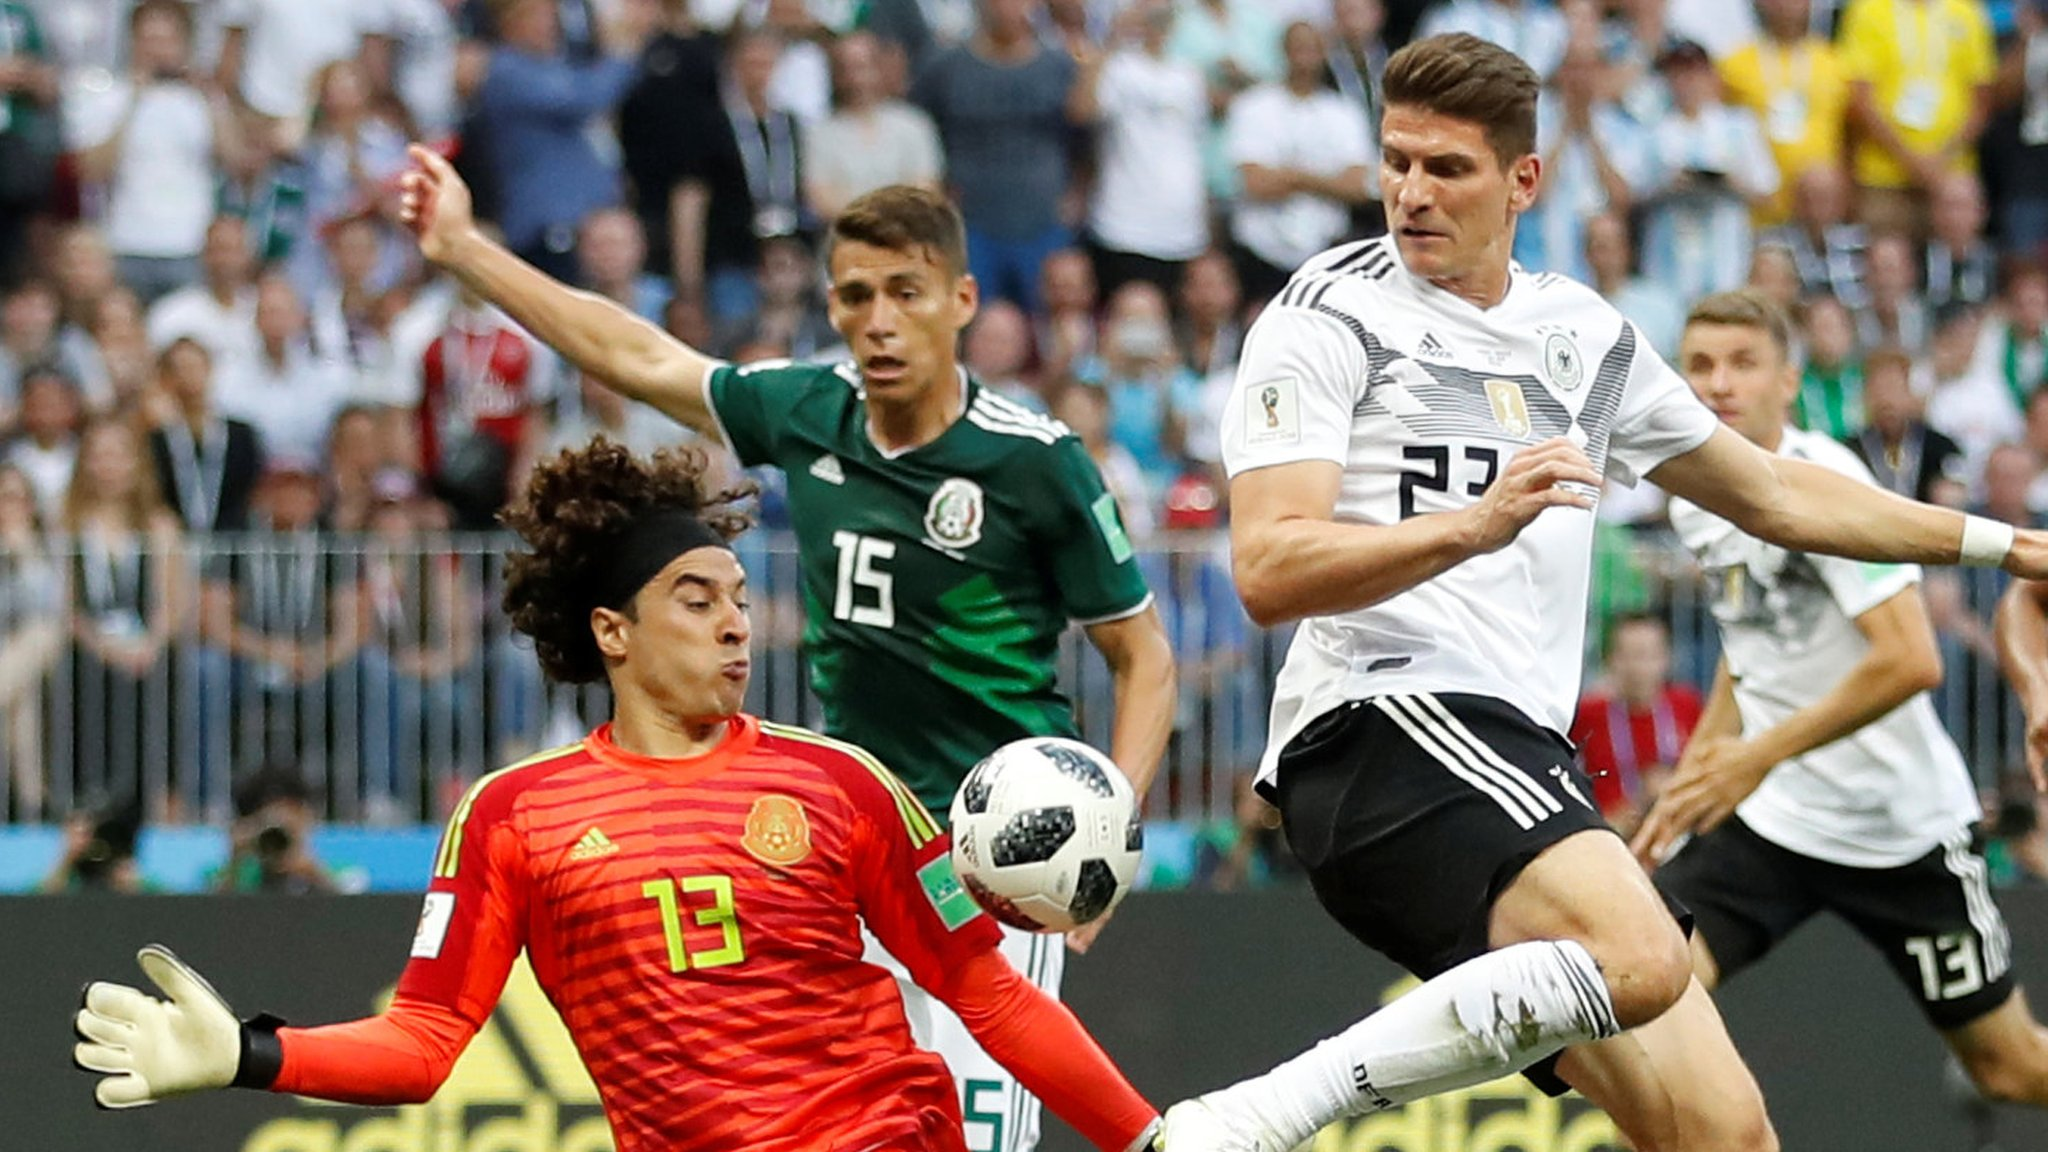 World Cup 2018: Germany v Mexico - how you rated the players